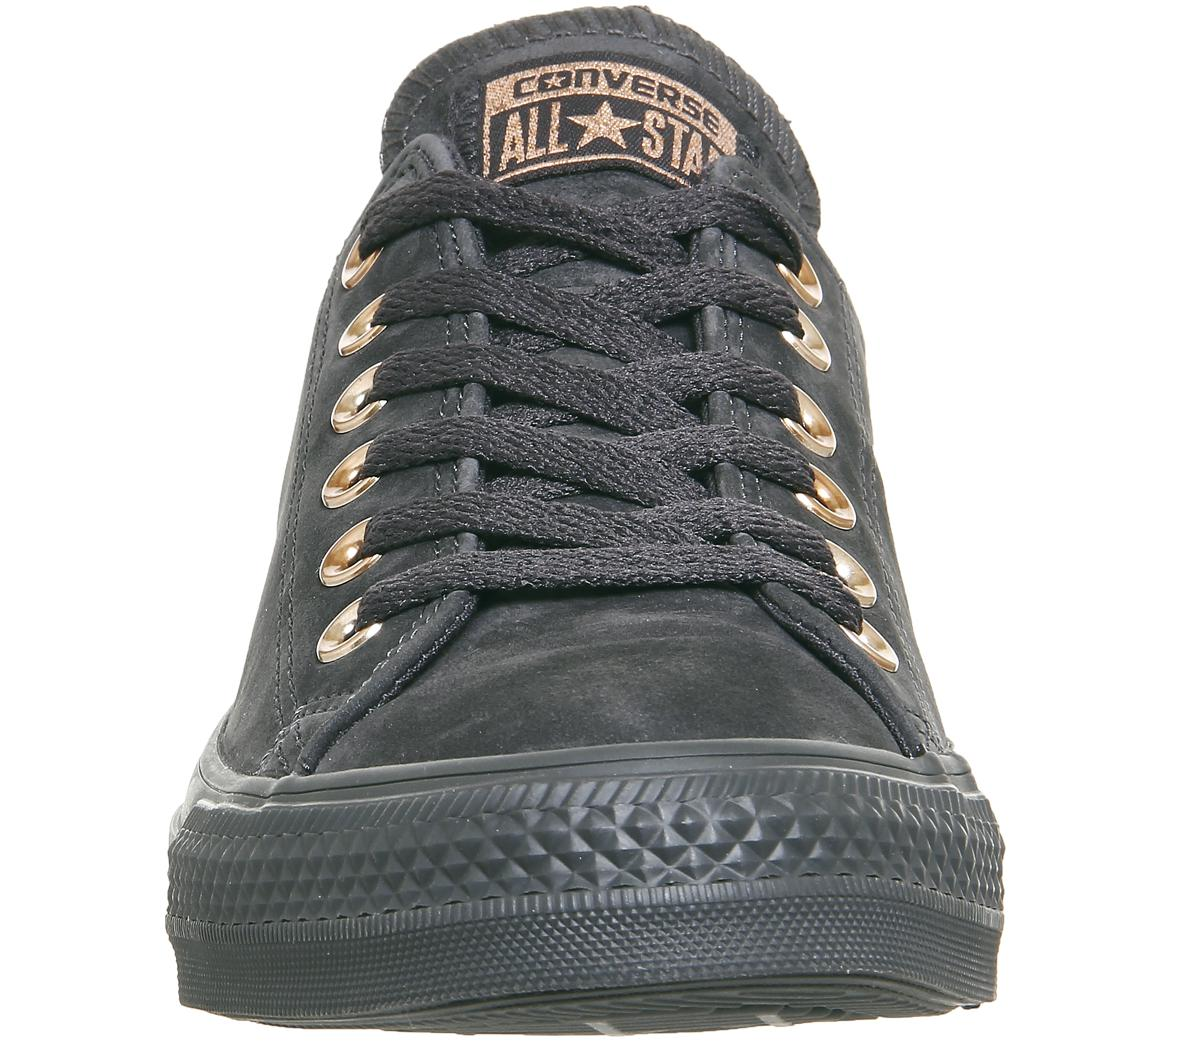 Converse All Star Low Leather in Black